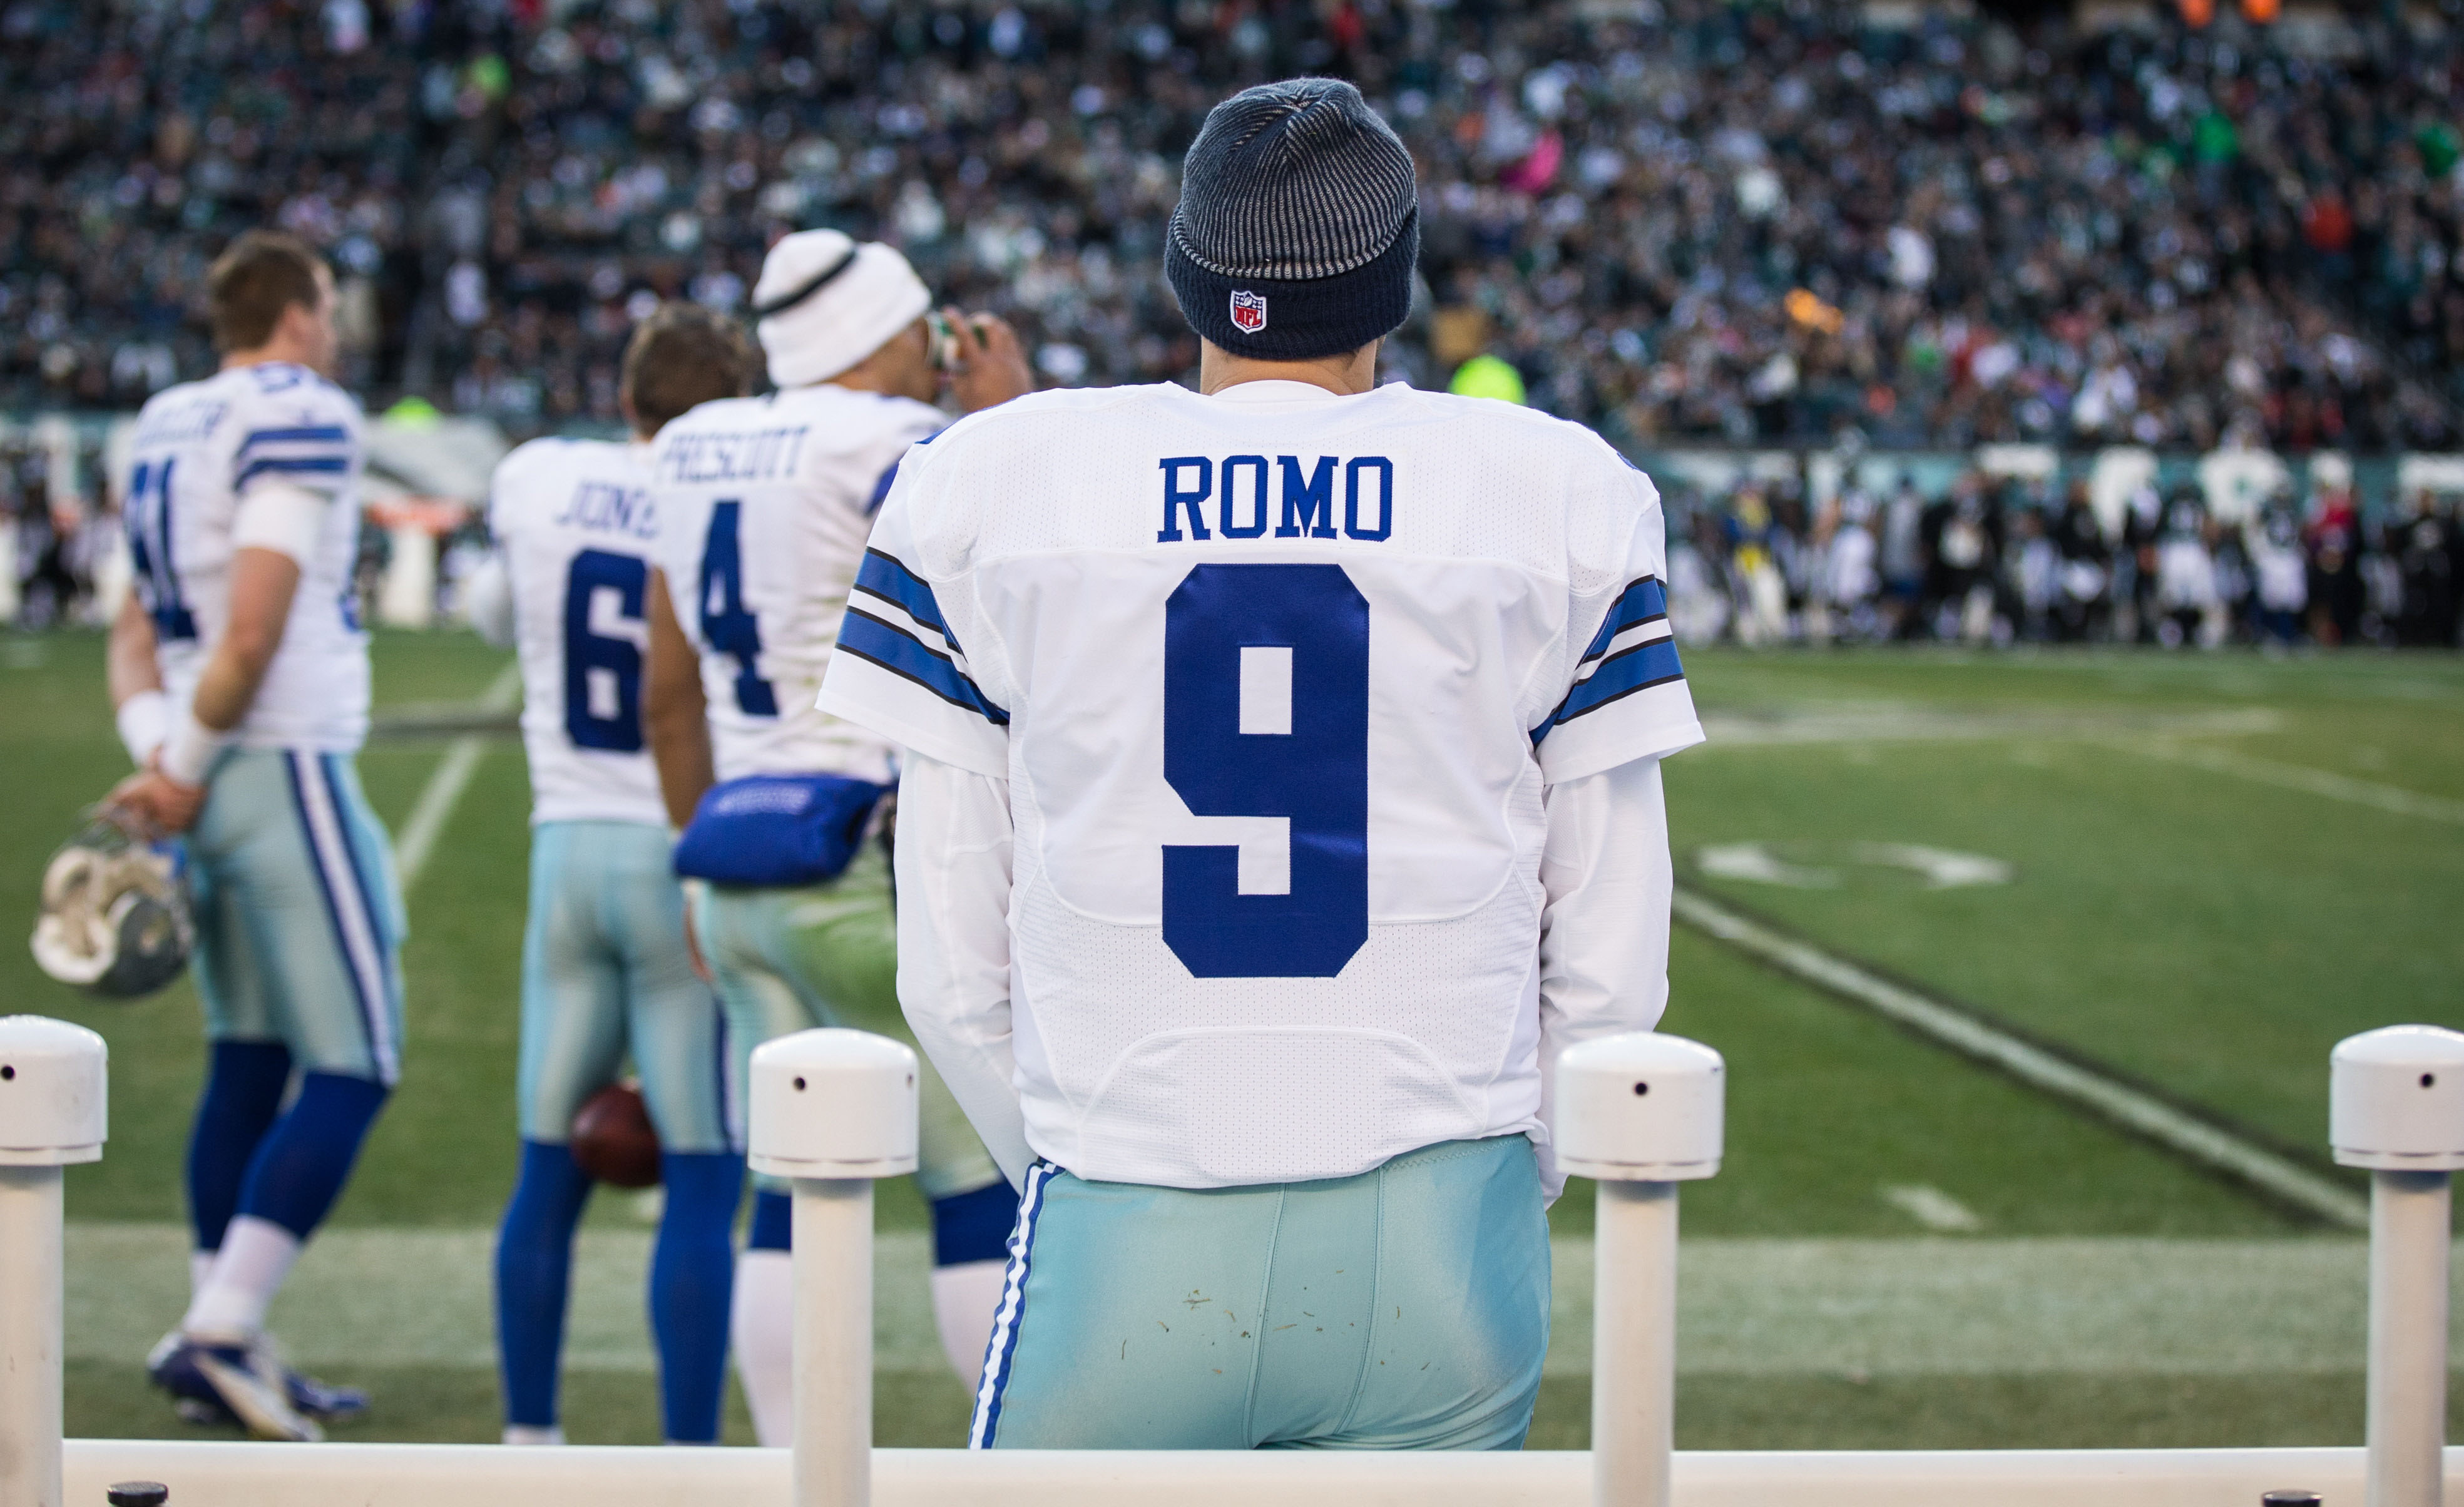 Jan 1, 2017; Philadelphia, PA, USA; Dallas Cowboys quarterback Tony Romo (9) sits on the bench while watching game action against the Philadelphia Eagles at Lincoln Financial Field. The Philadelphia Eagles won 27-13. Mandatory Credit: Bill Streicher-USA TODAY Sports